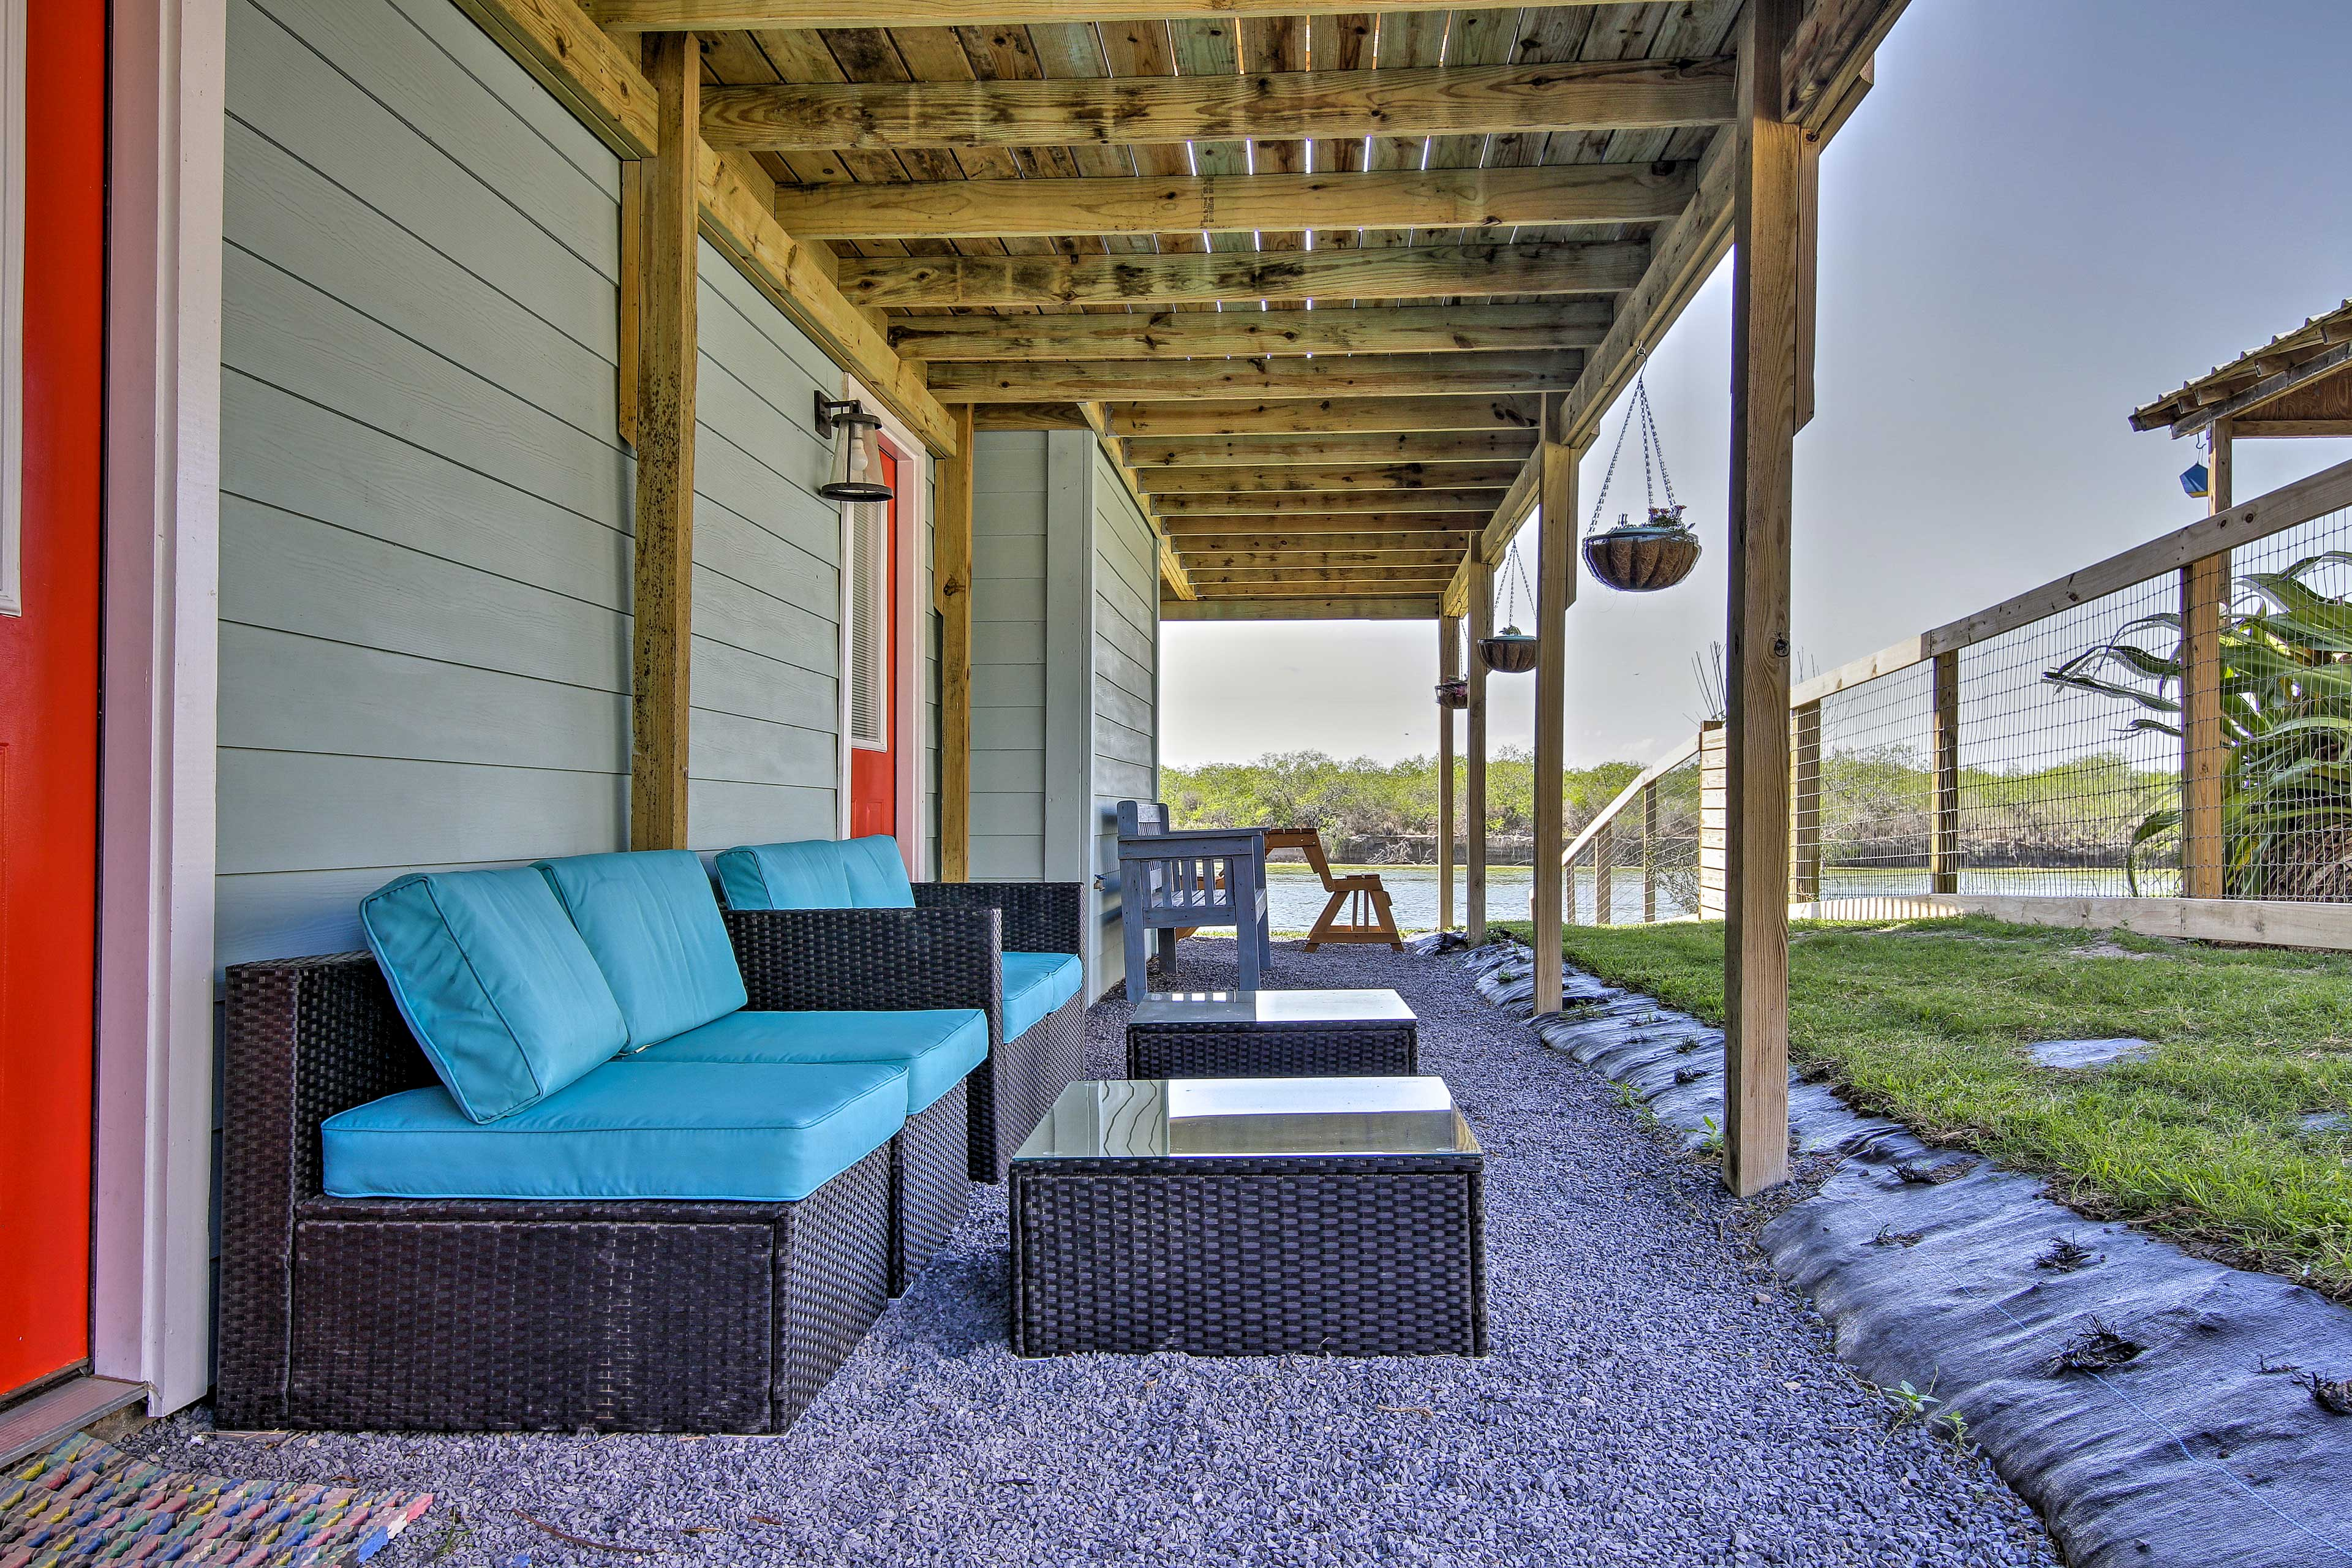 You'll find plenty of seating outdoors.